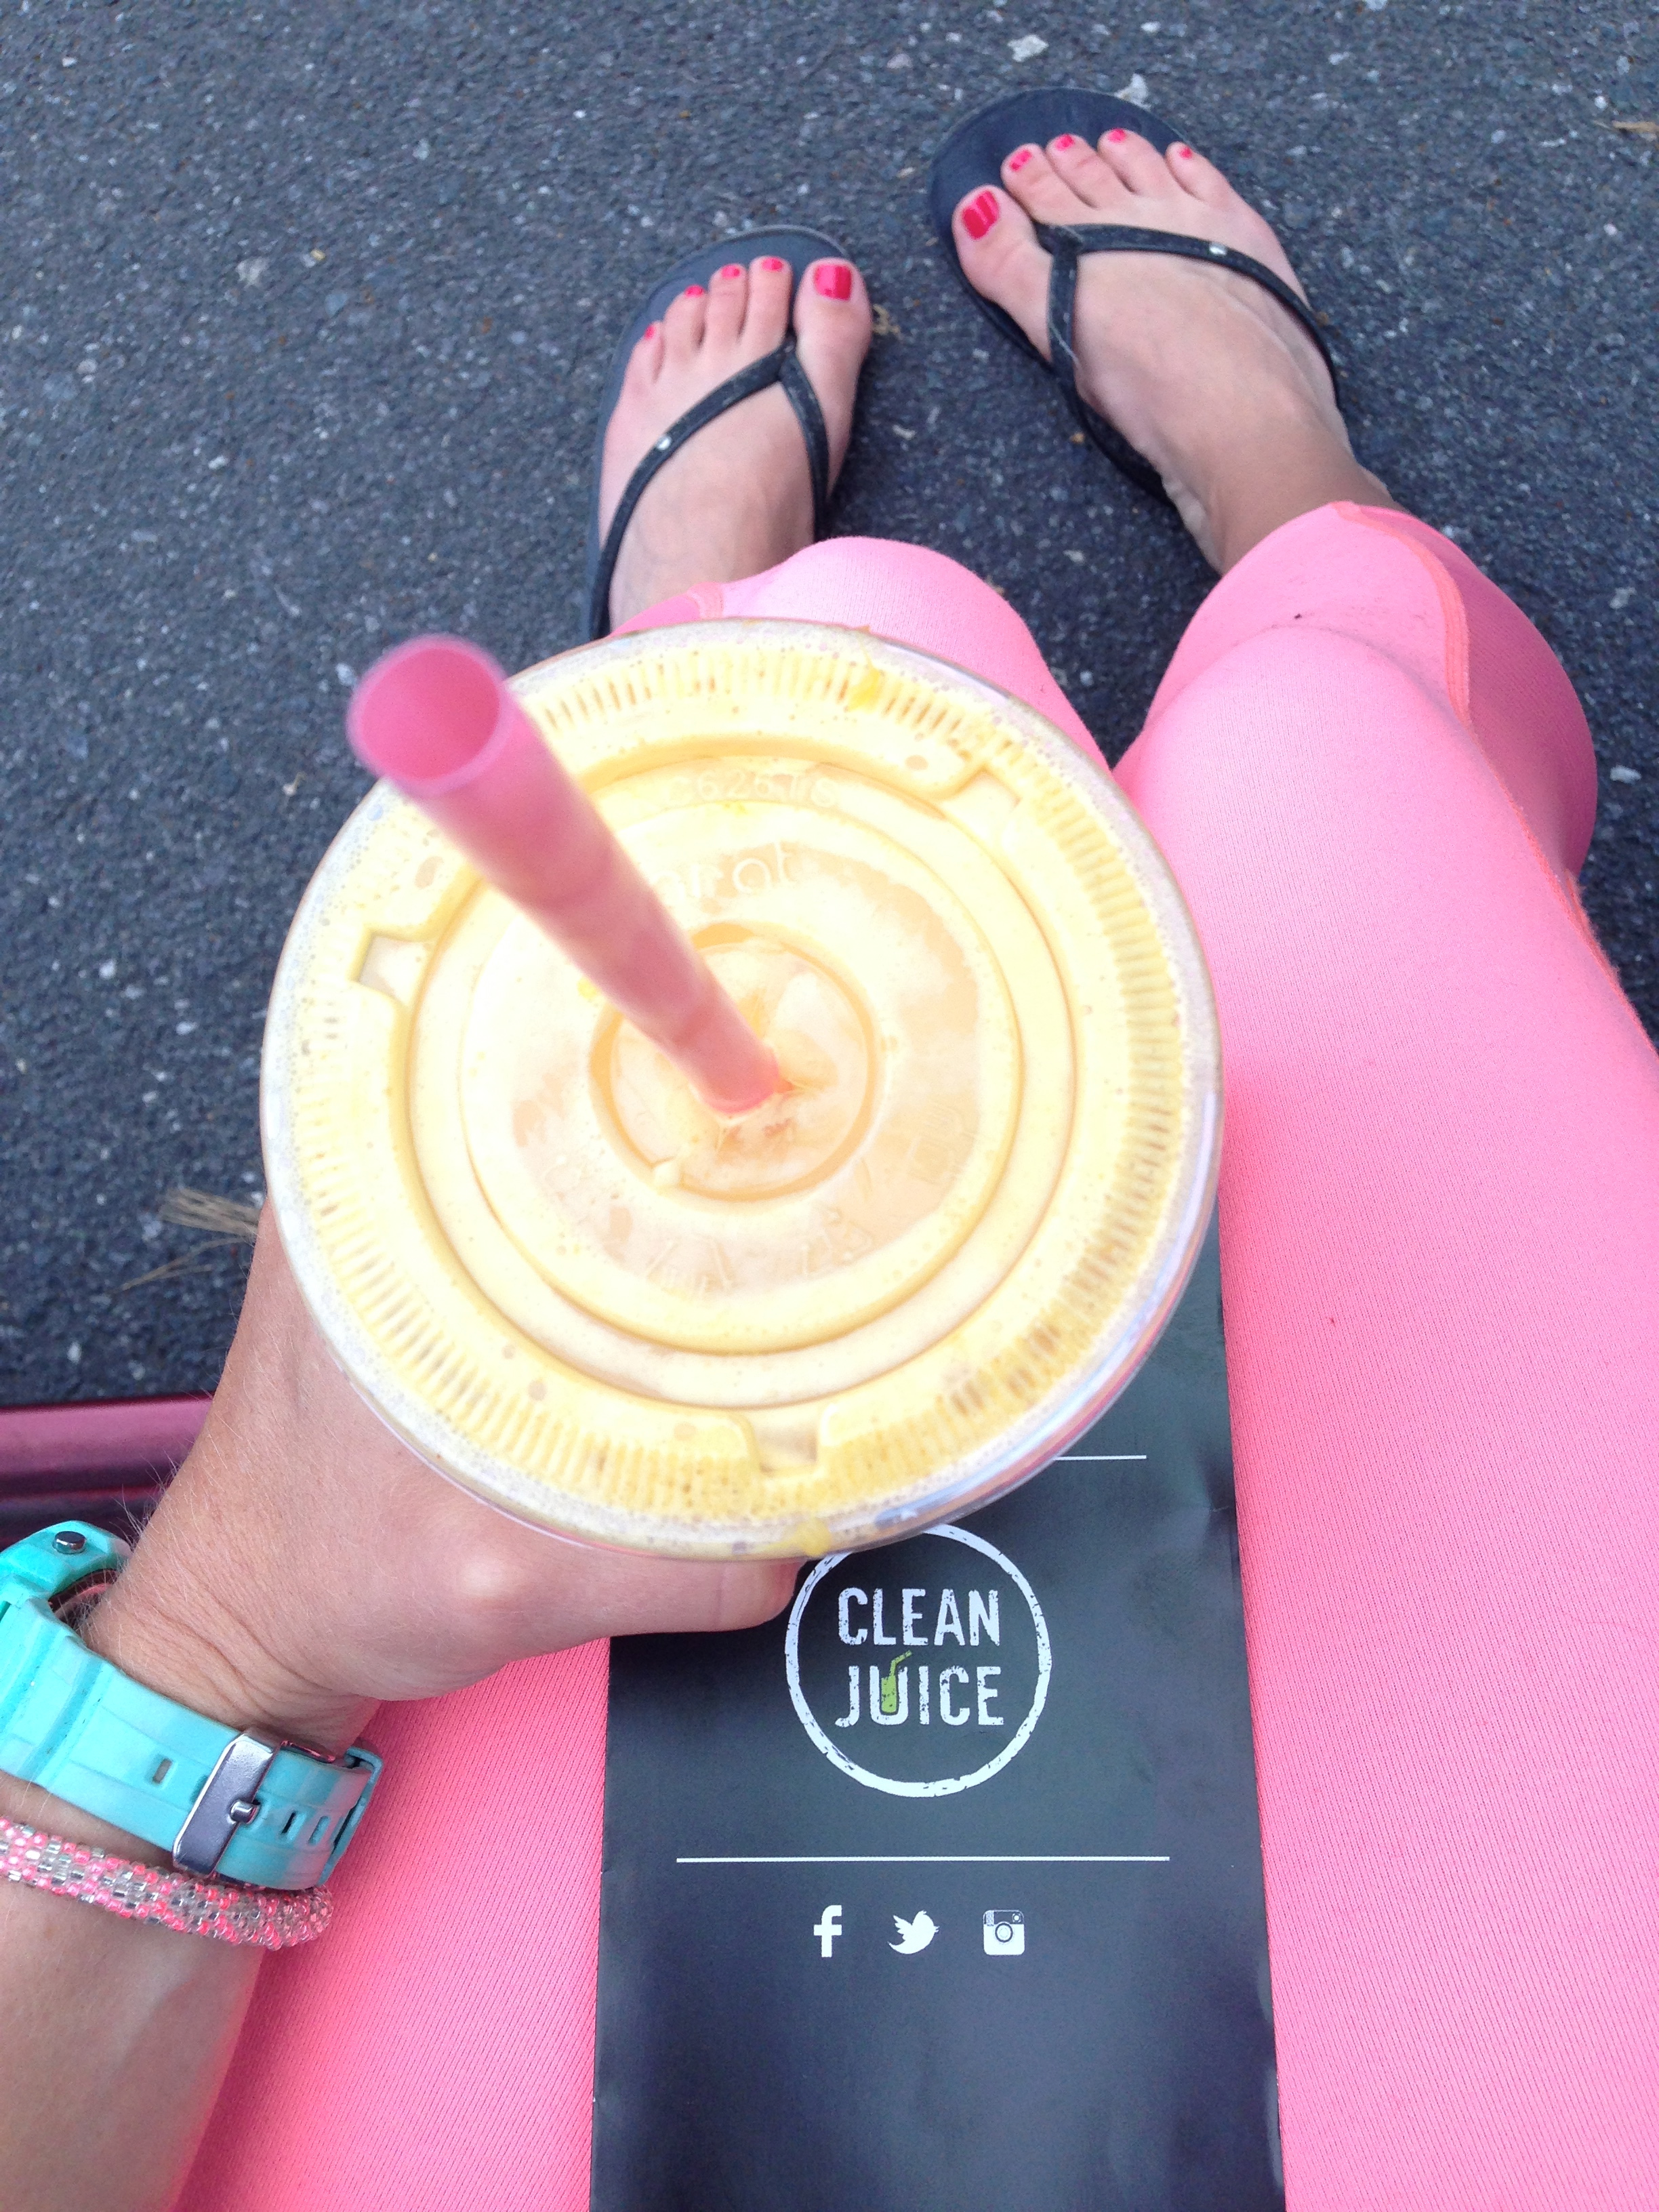 Wake Up Juice add cayenne is the perfect accessory :)